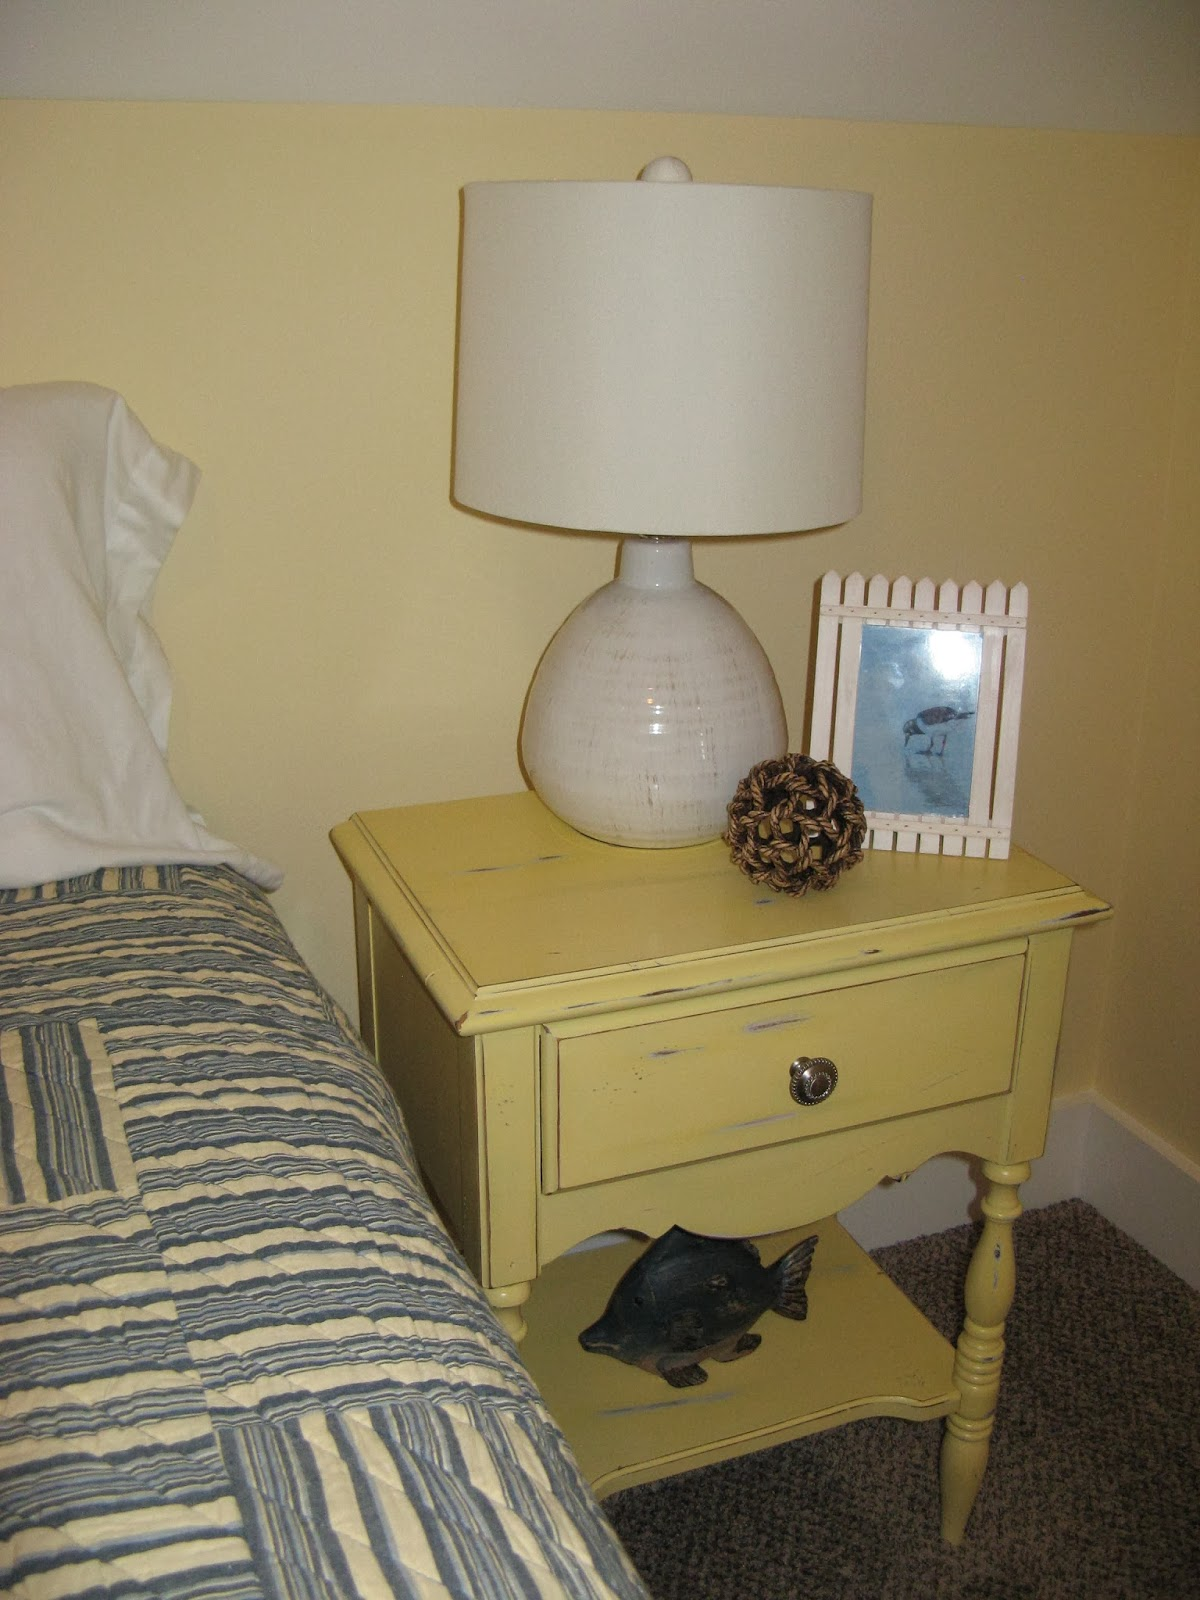 Nightstand - Sandpaper Paint Distressed in Room